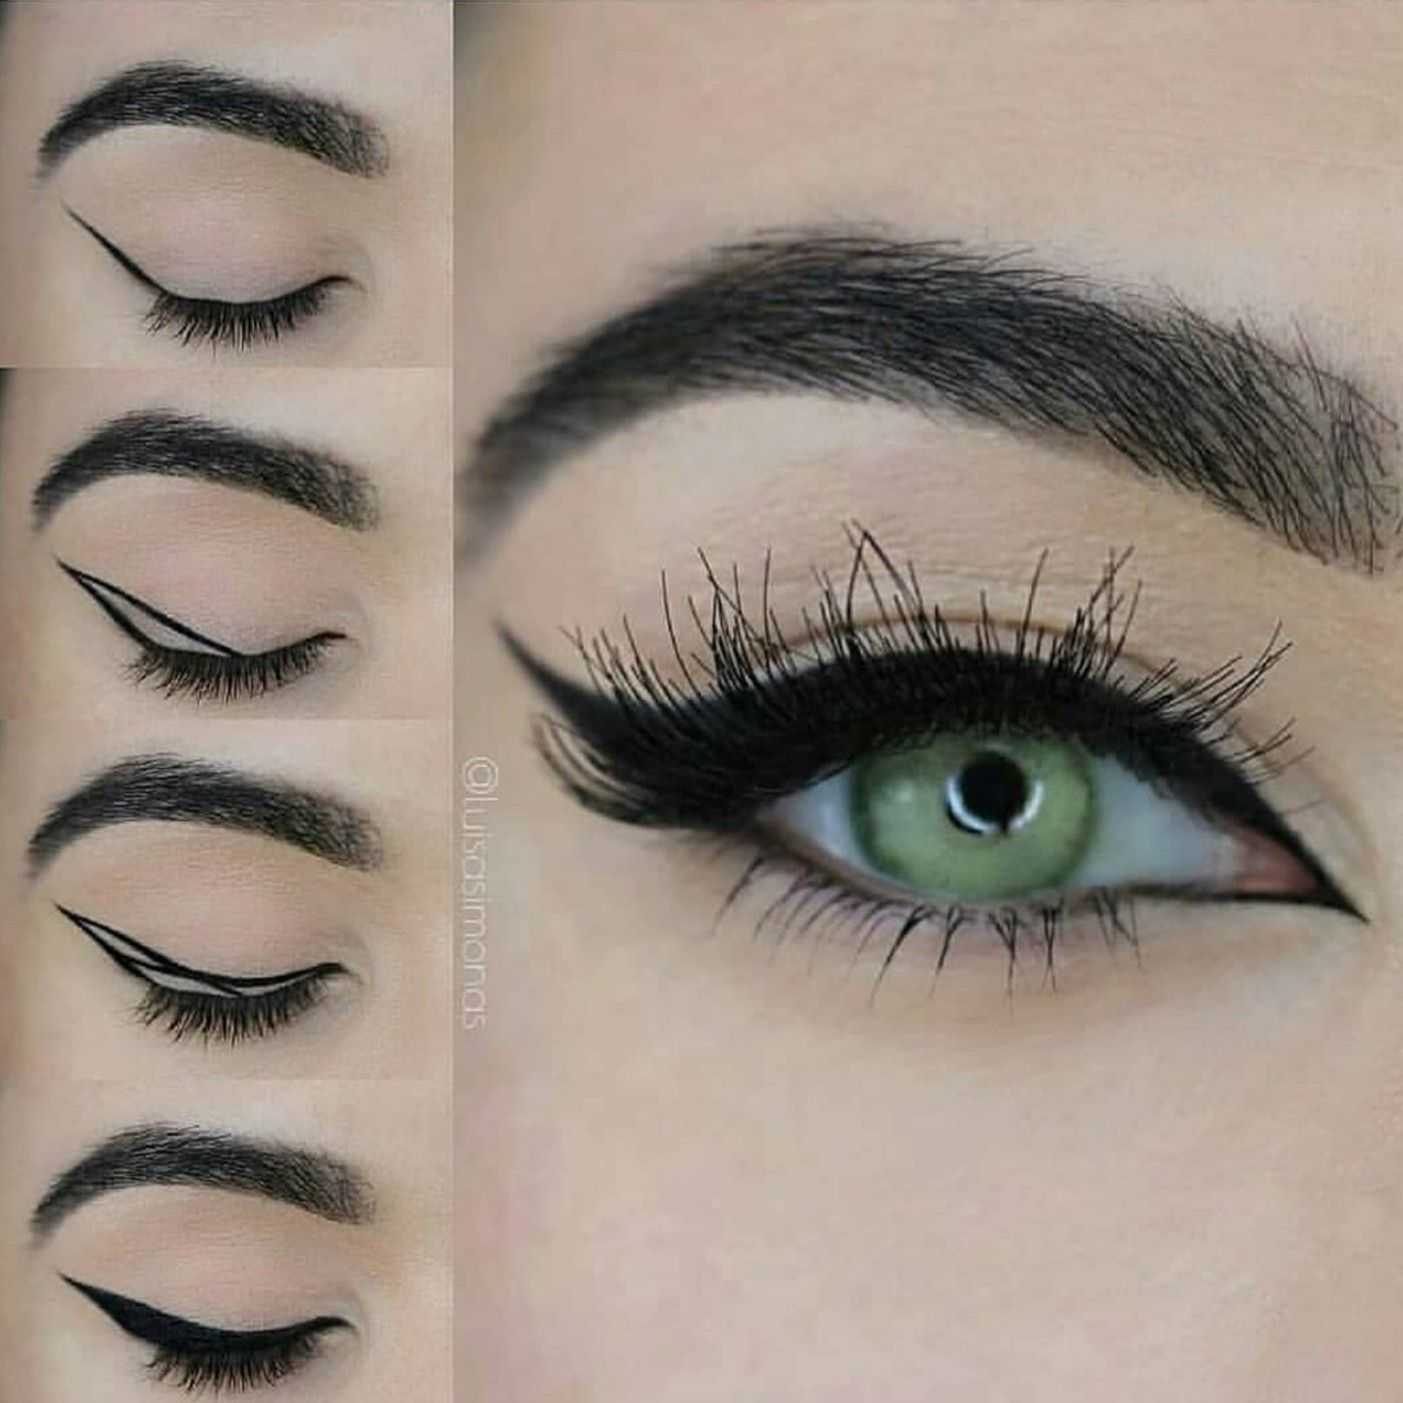 Pin By Shay On Hallway In 2019: Pin By Tahnee Shay On Liner In 2019